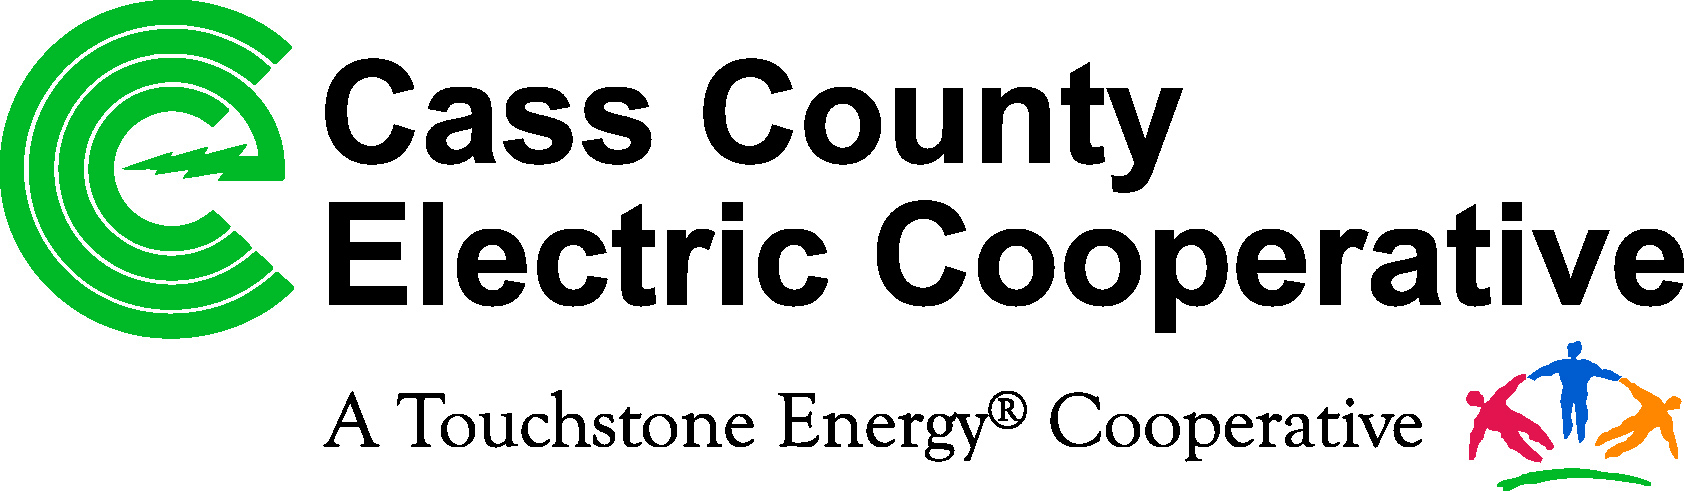 Cass_County_Electric_Cooperative_color.jpg